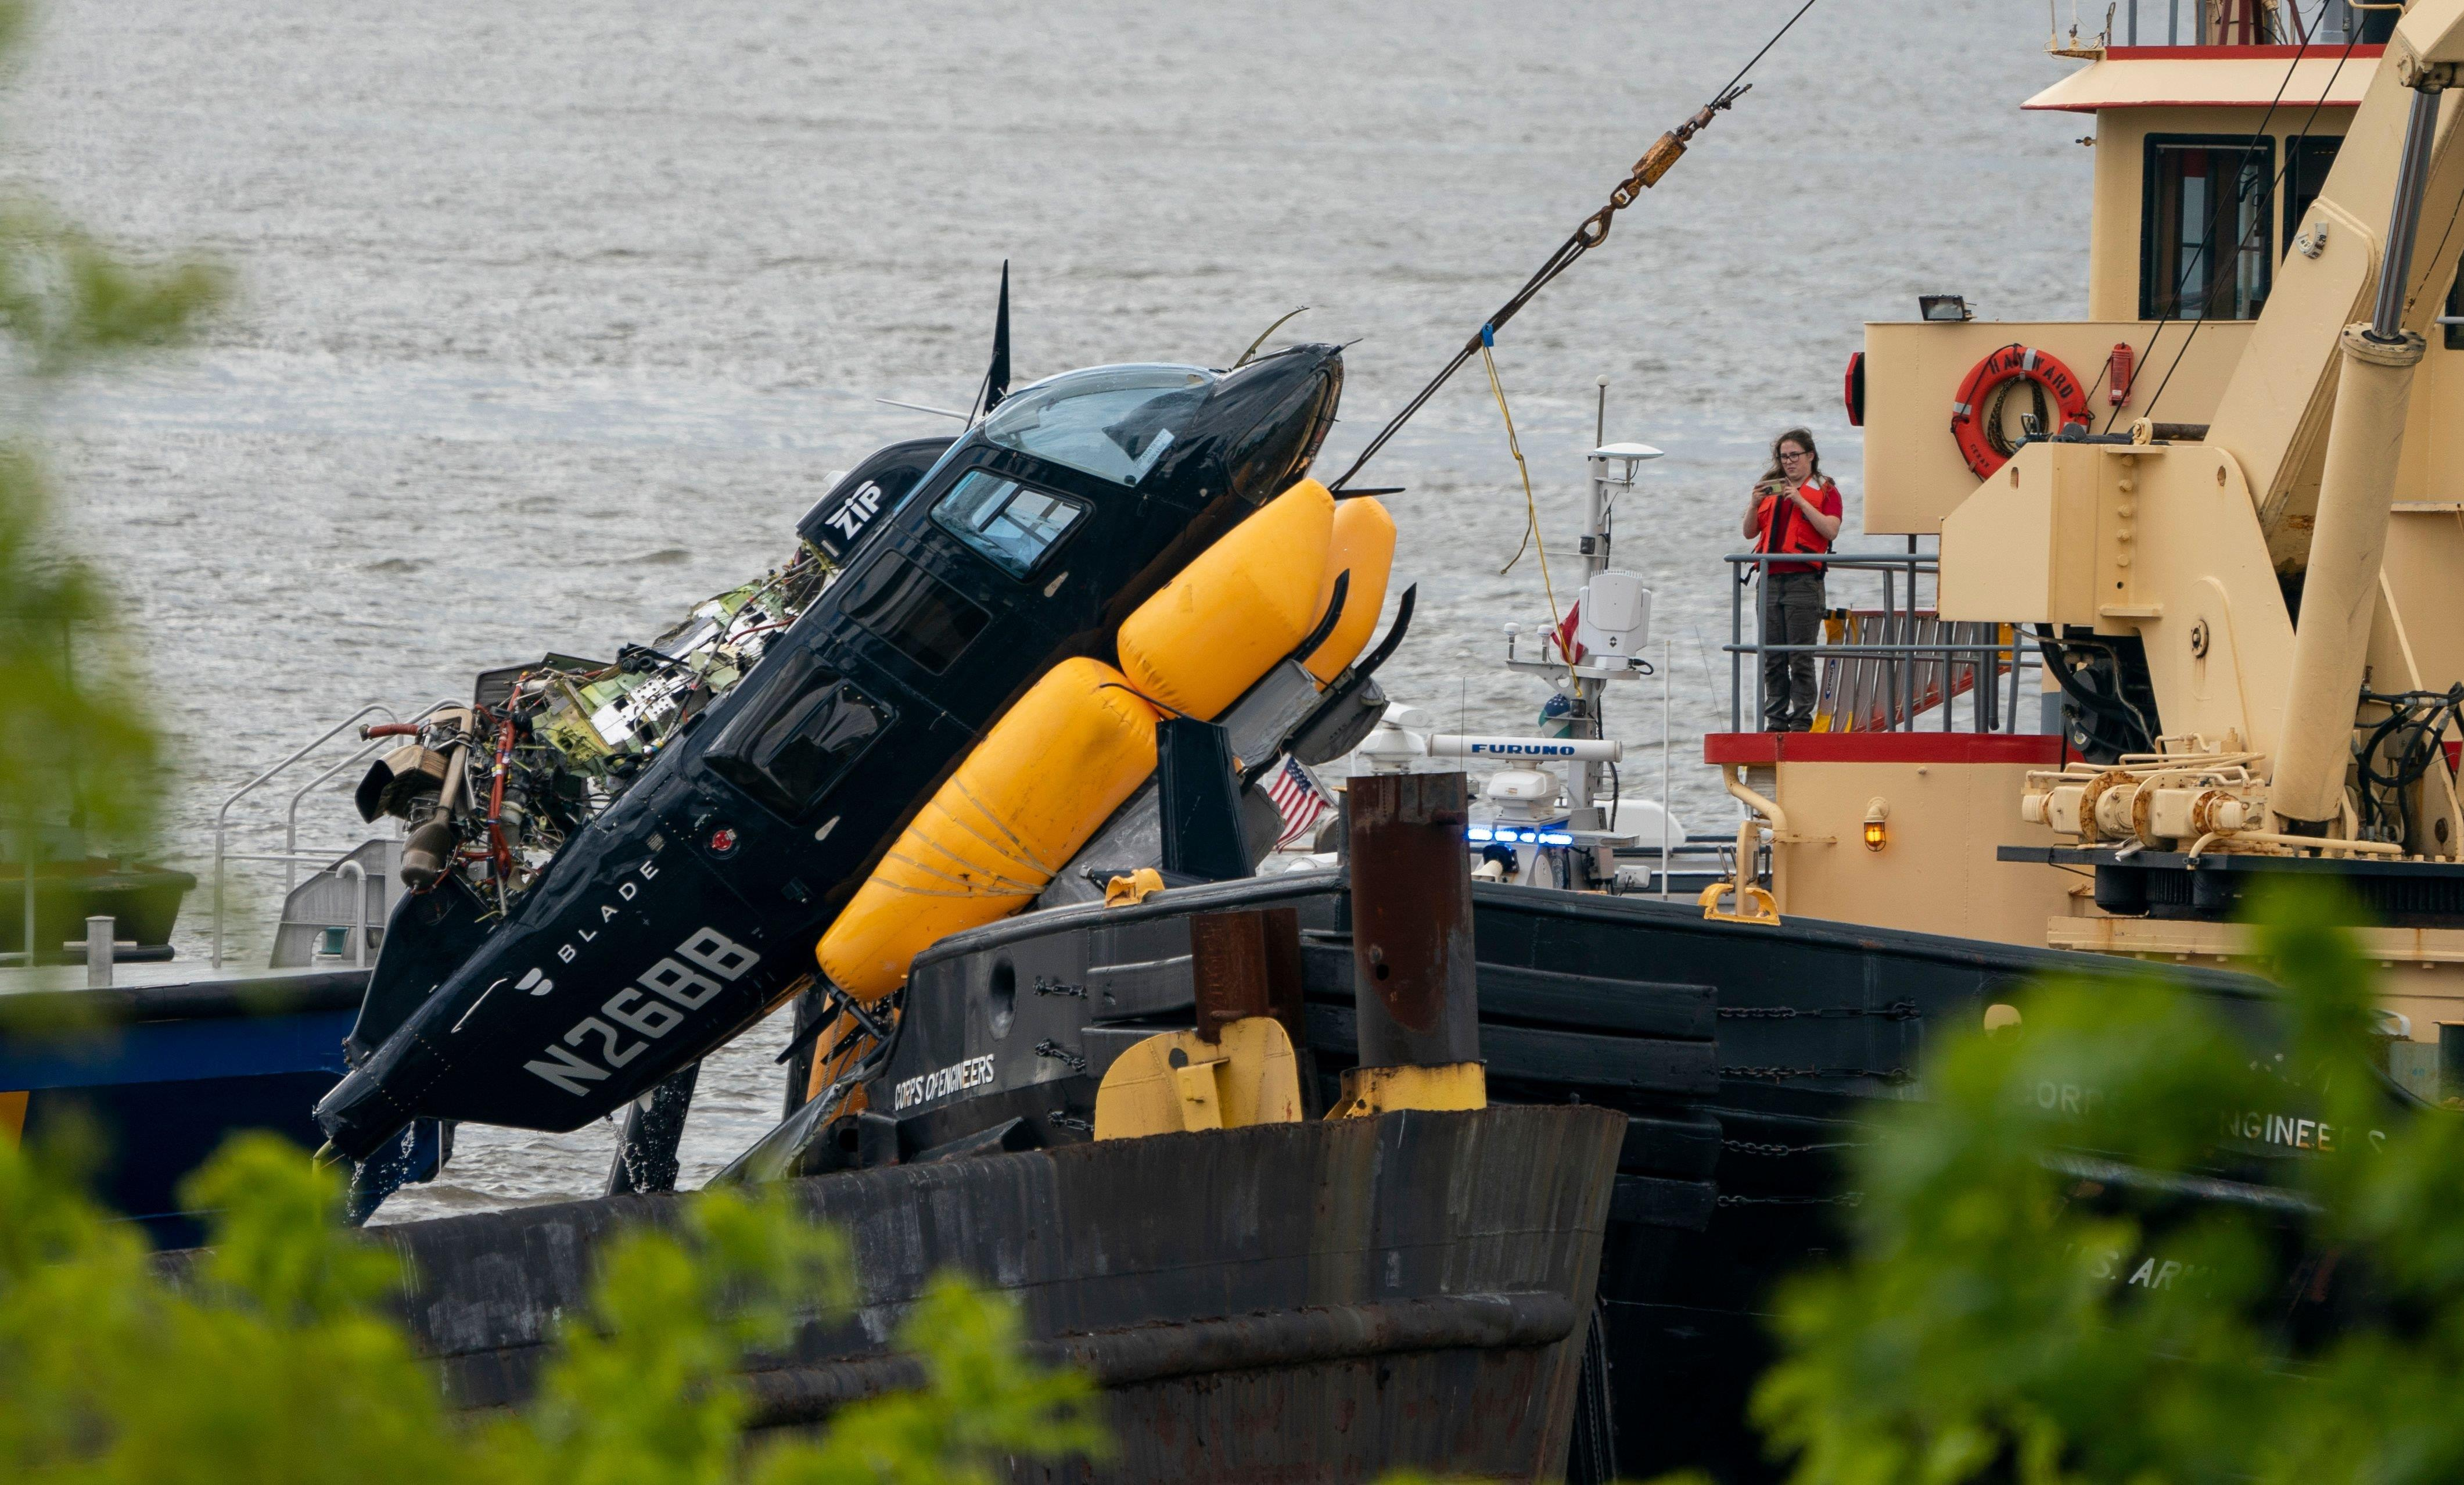 Helicopter Crashes into Hudson River in New York, Pilot Rescued